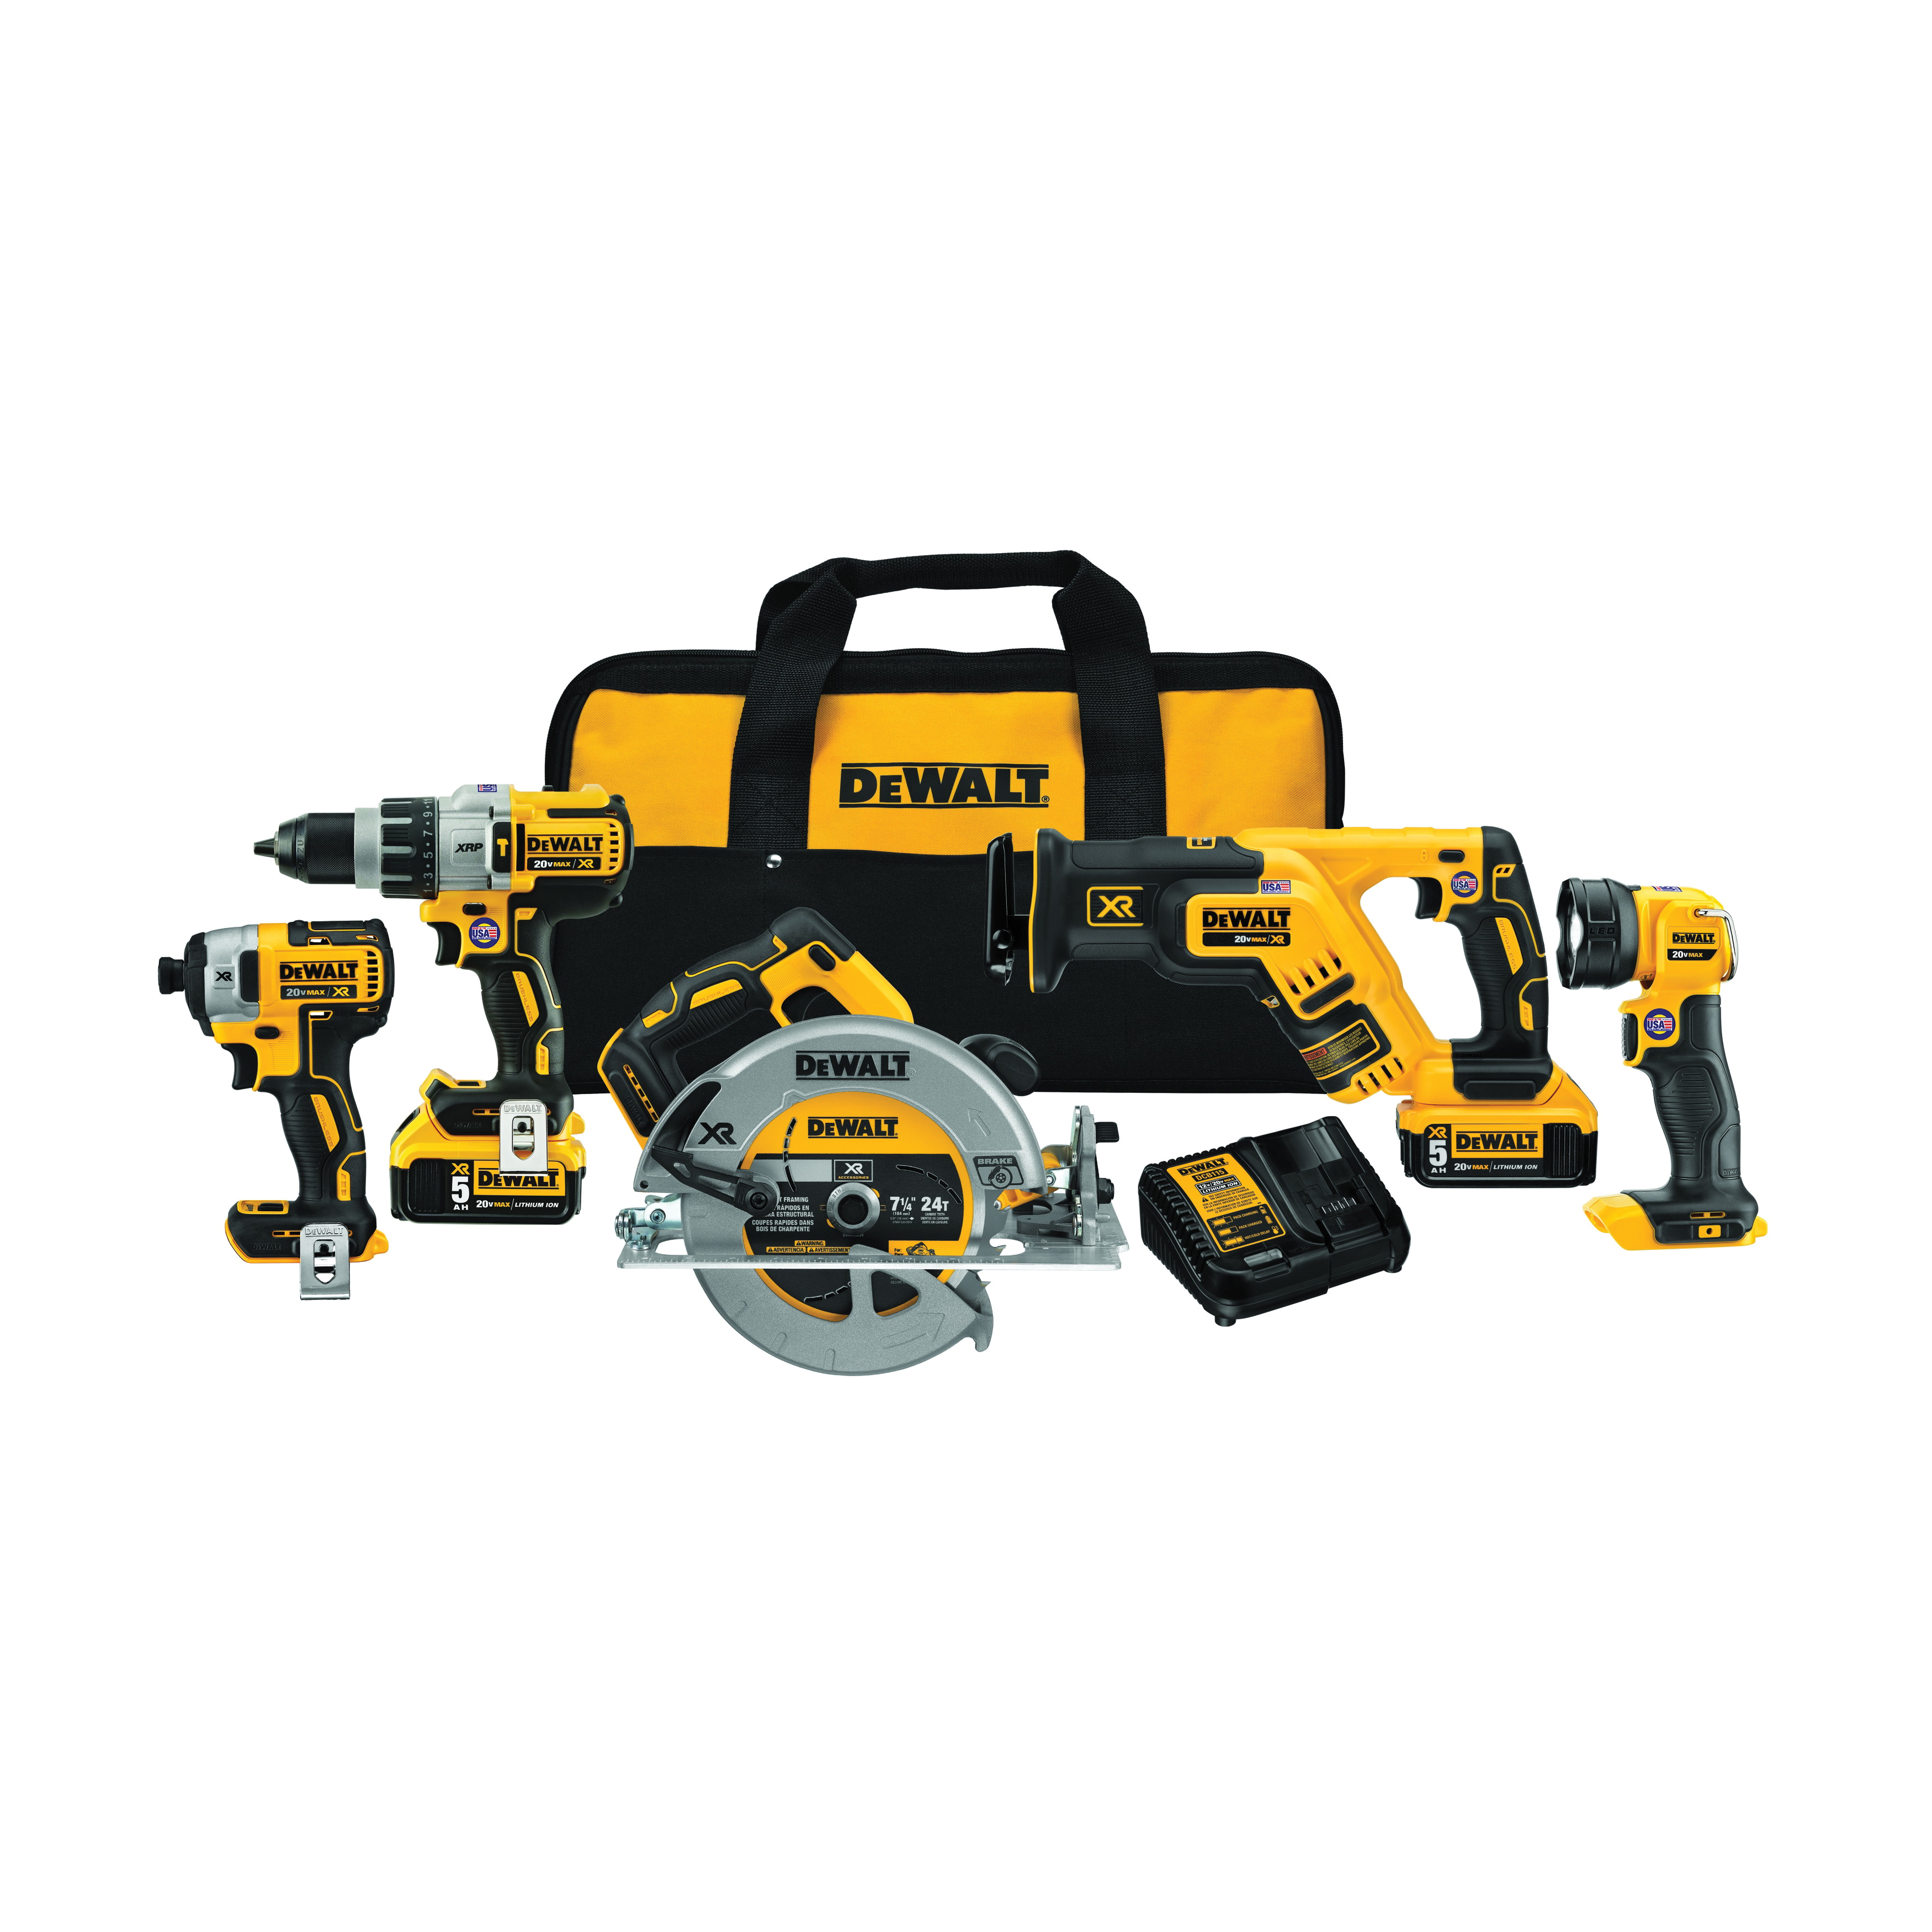 DeWALT® 20V MAX* MATRIX™ XR™ DCK594P2 Cordless Combination Kit, Tools: Hammer Drill/Driver, Impact Driver, 20 V, 5 Ah Lithium-Ion